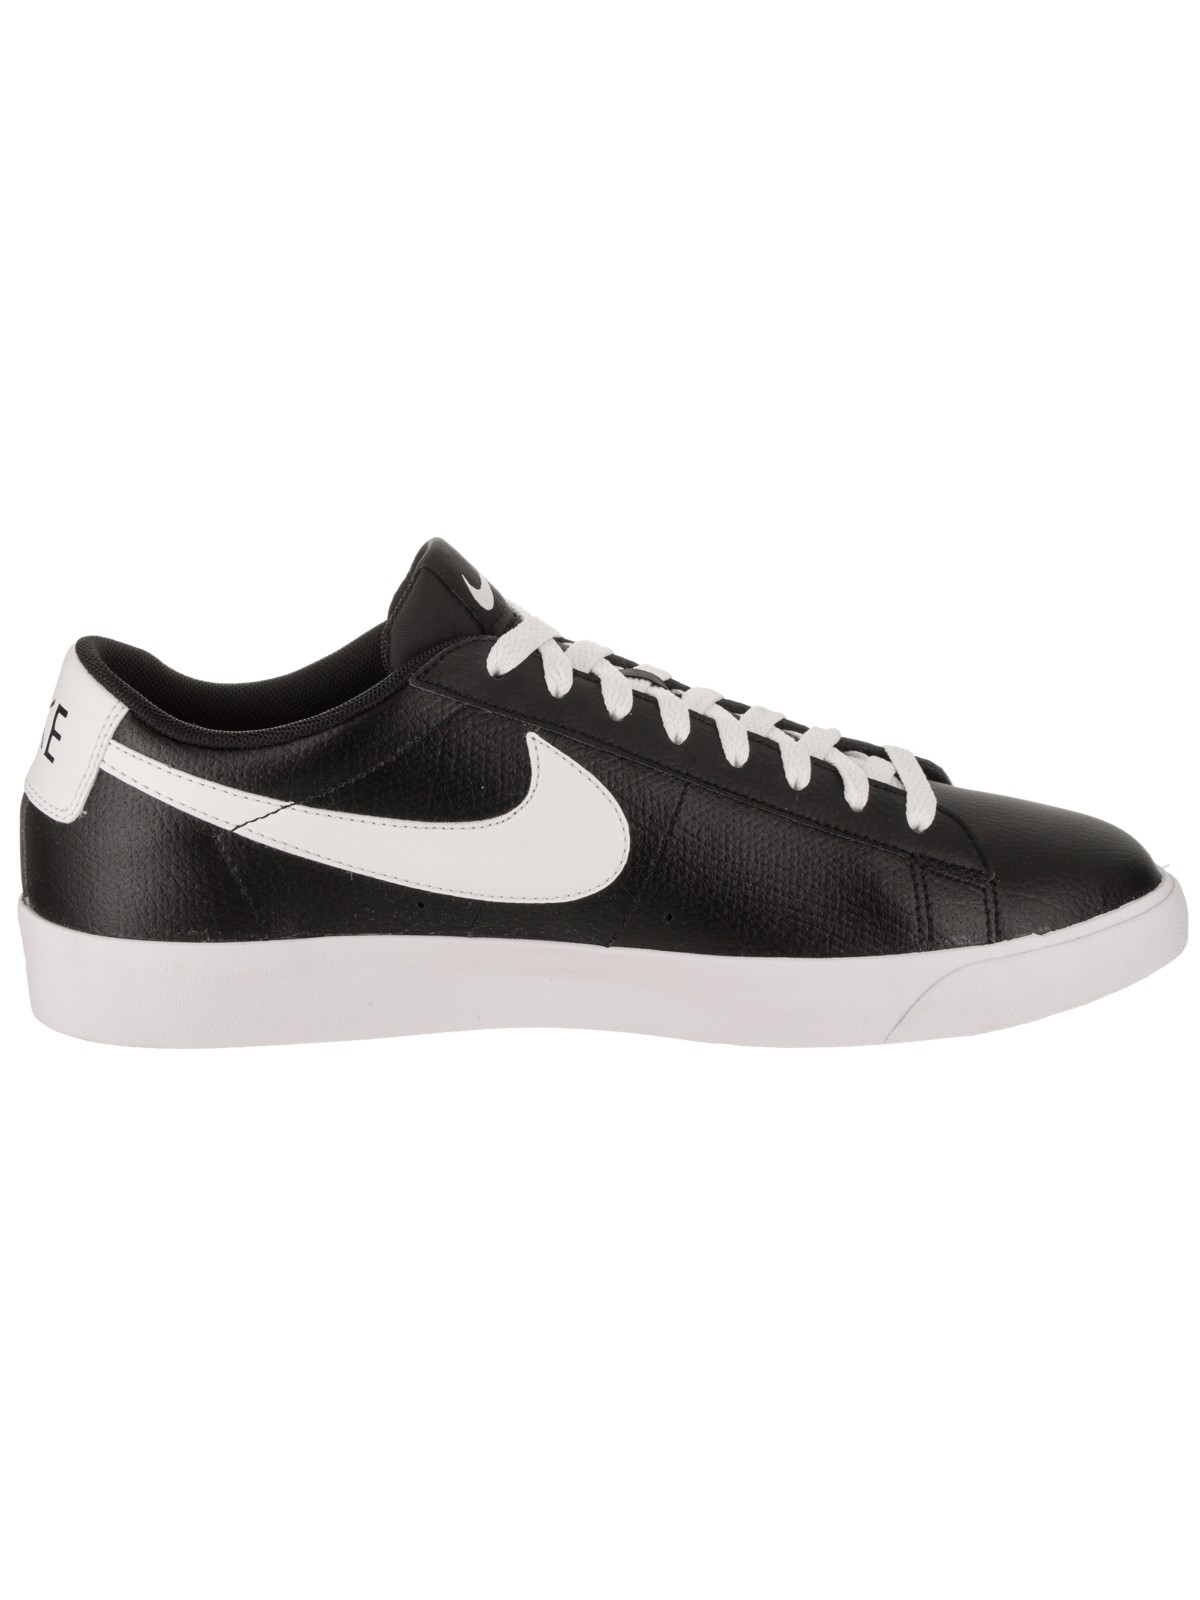 Nike Men's Blazer Low Leather Casual Shoe